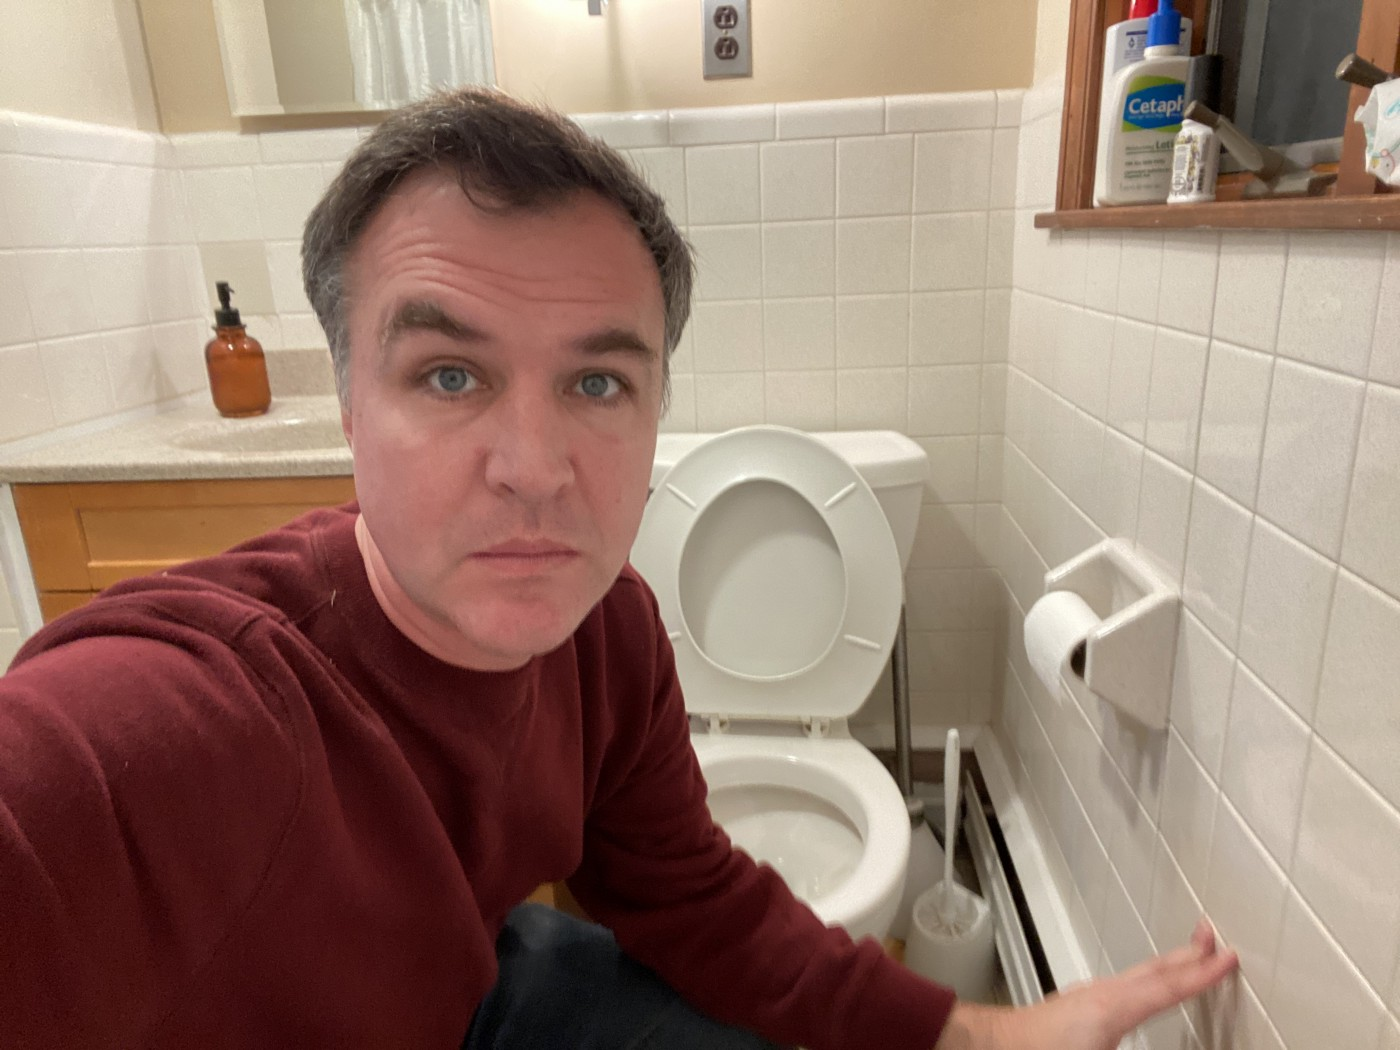 Matt Farley, a TikTok creator, poses for a selfie next to a toilet in his restroom.